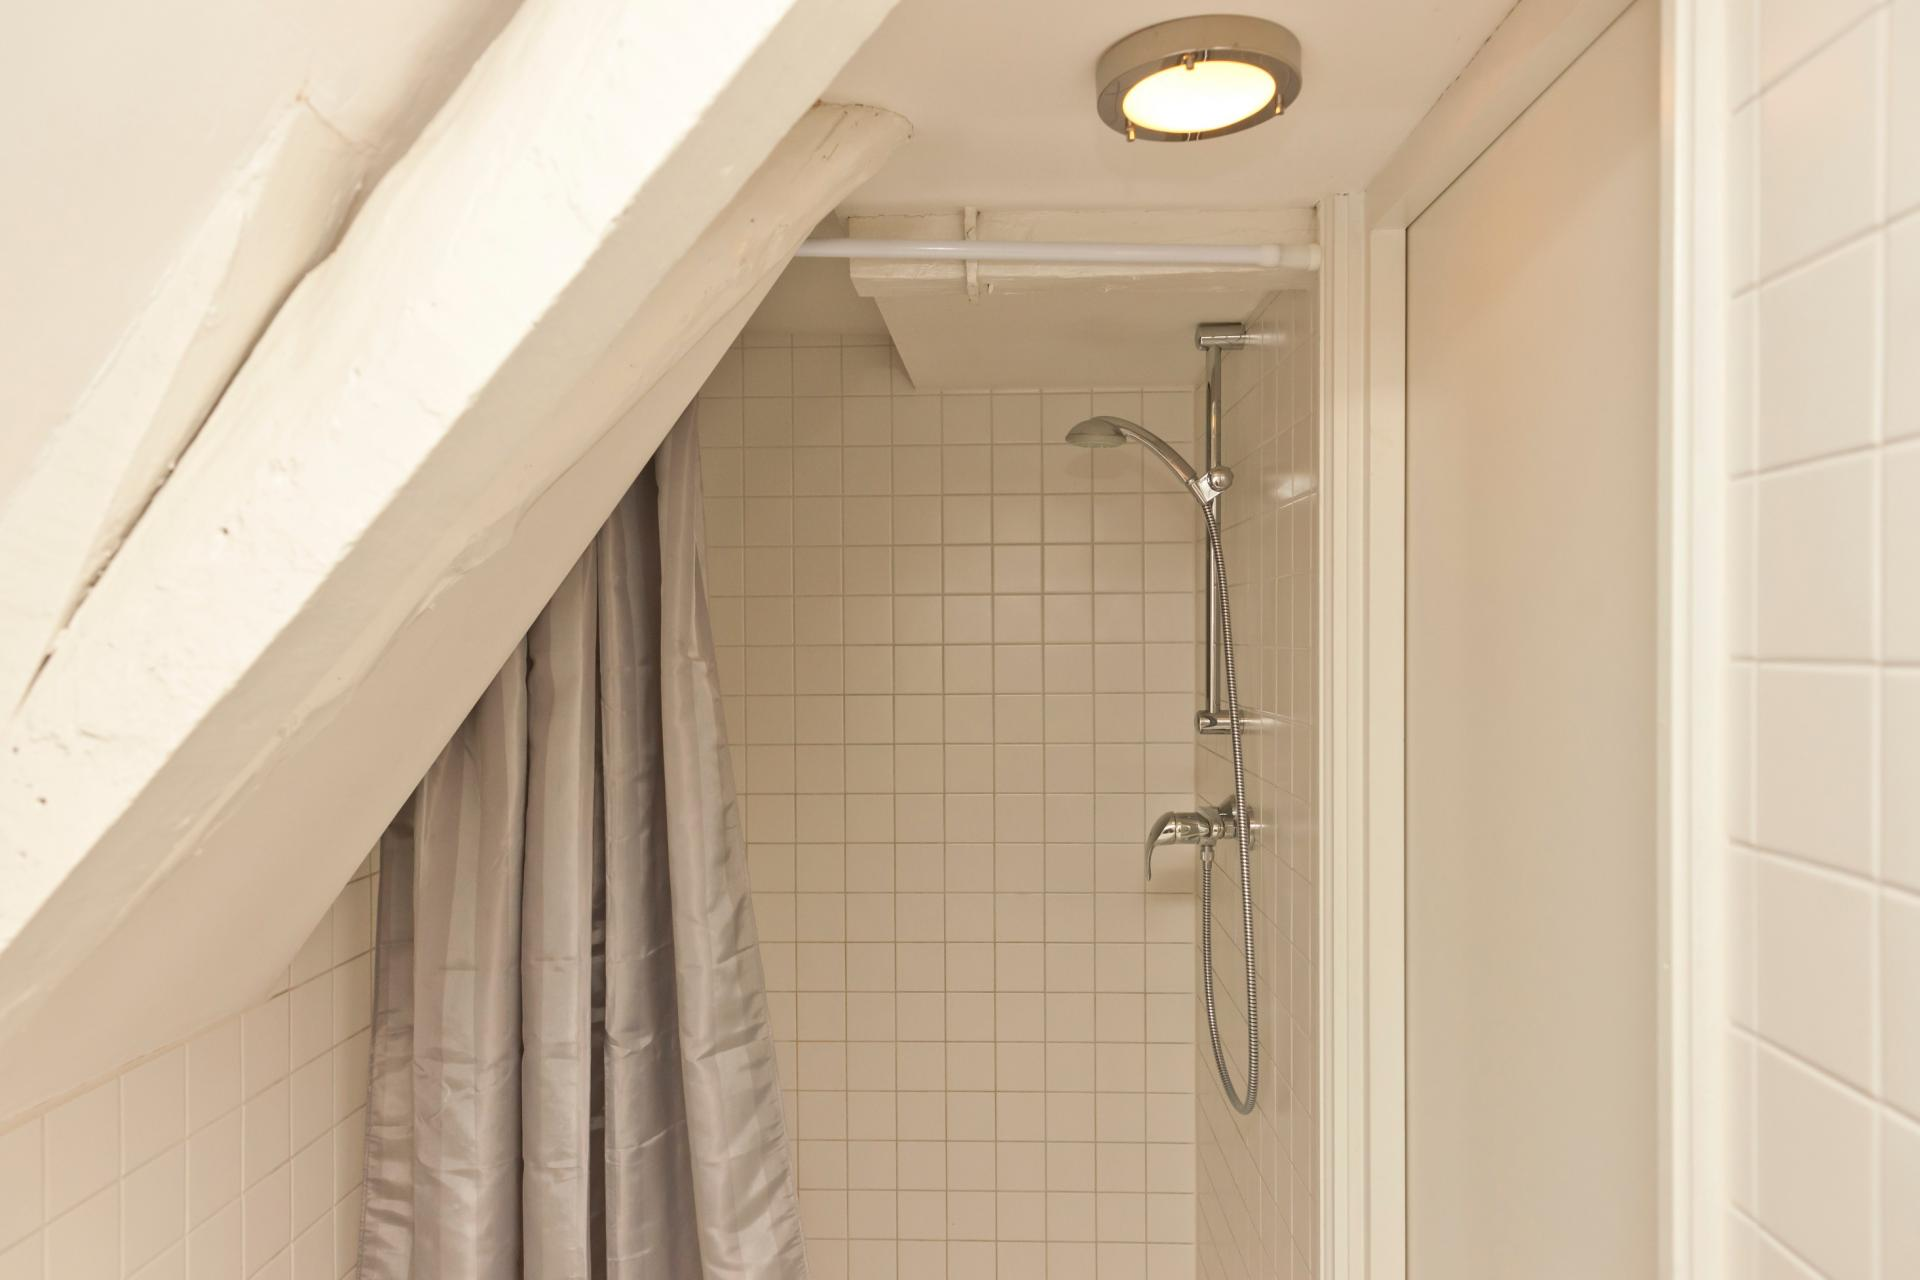 Shower at Jordaan Herenstraat Apartment, Amsterdam - Citybase Apartments